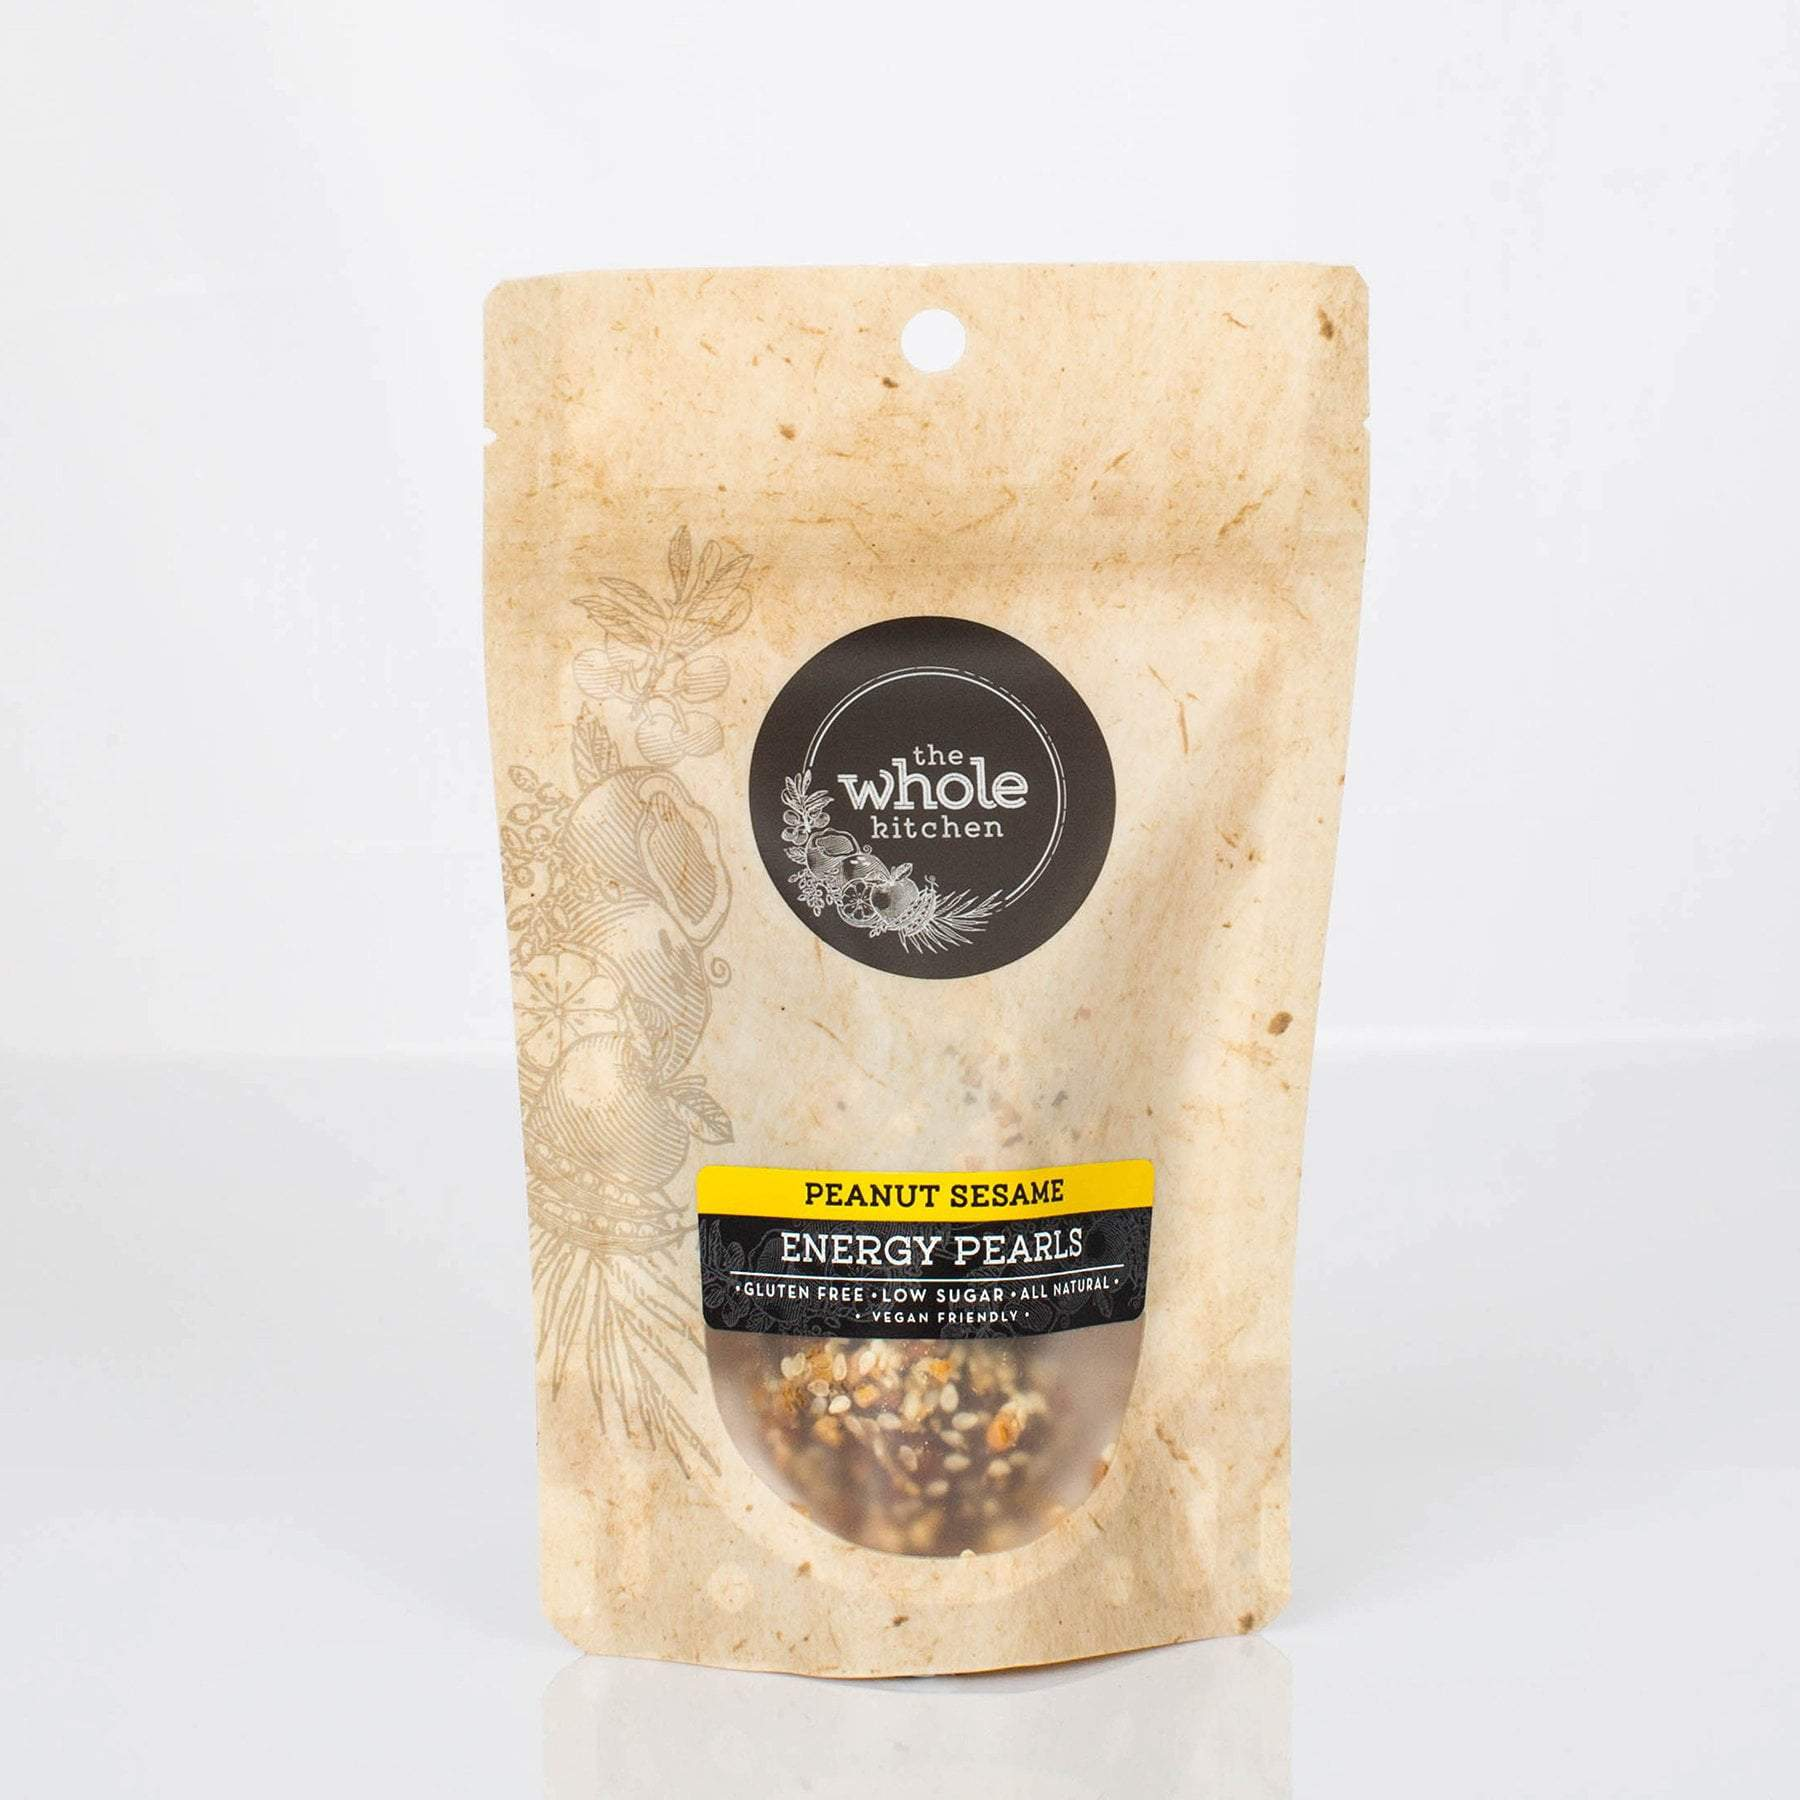 The Whole Kitchen Peanut Sesame Energy Pearls (2 pack) To Go > Ready to Eat